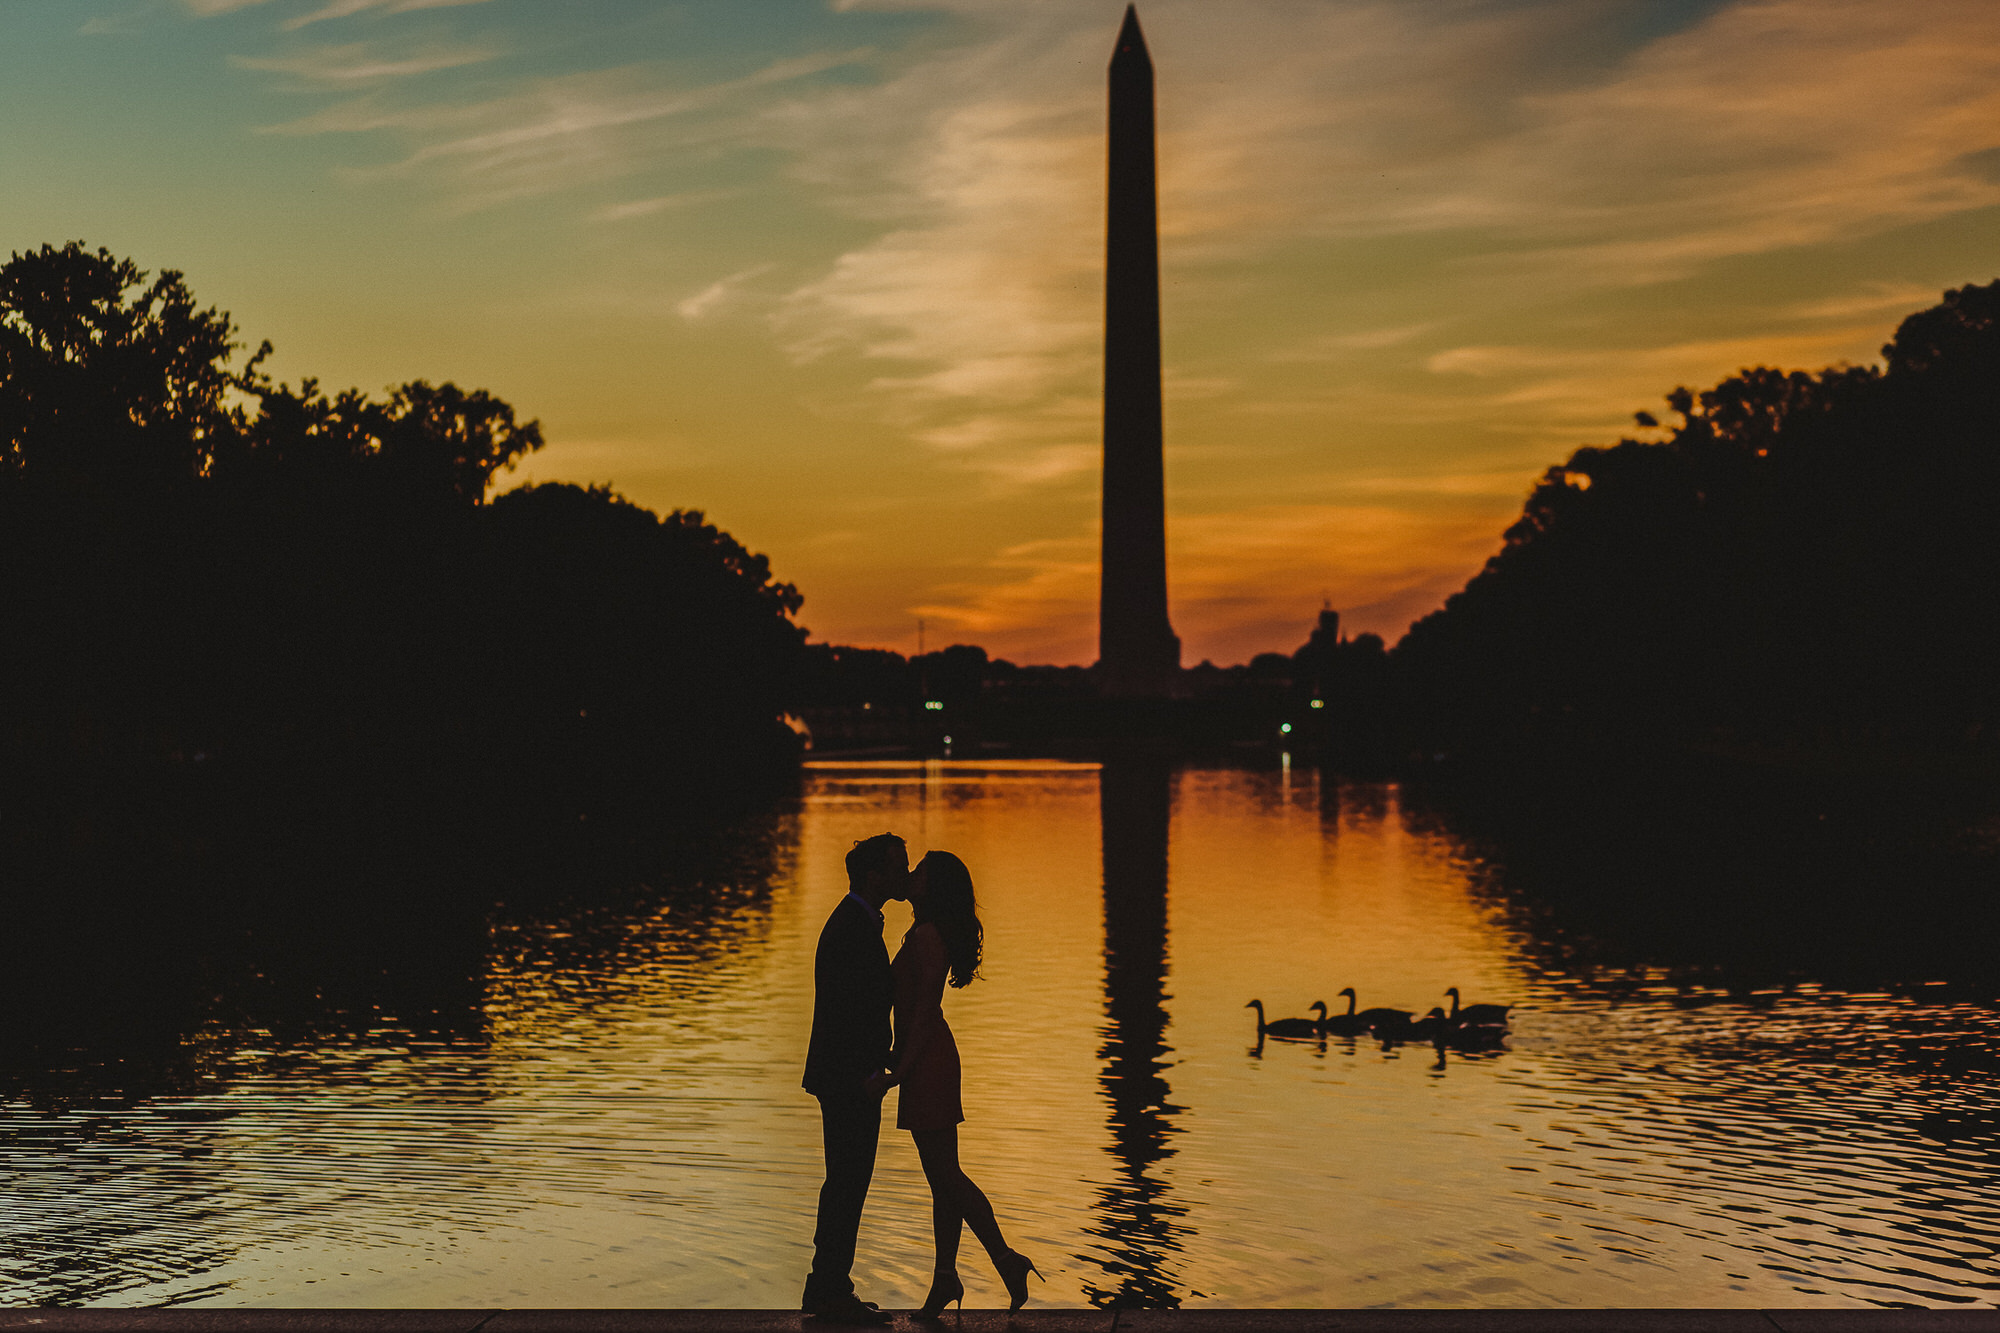 Silhouette of couple against national monument at sunset - photo by Ken Pak